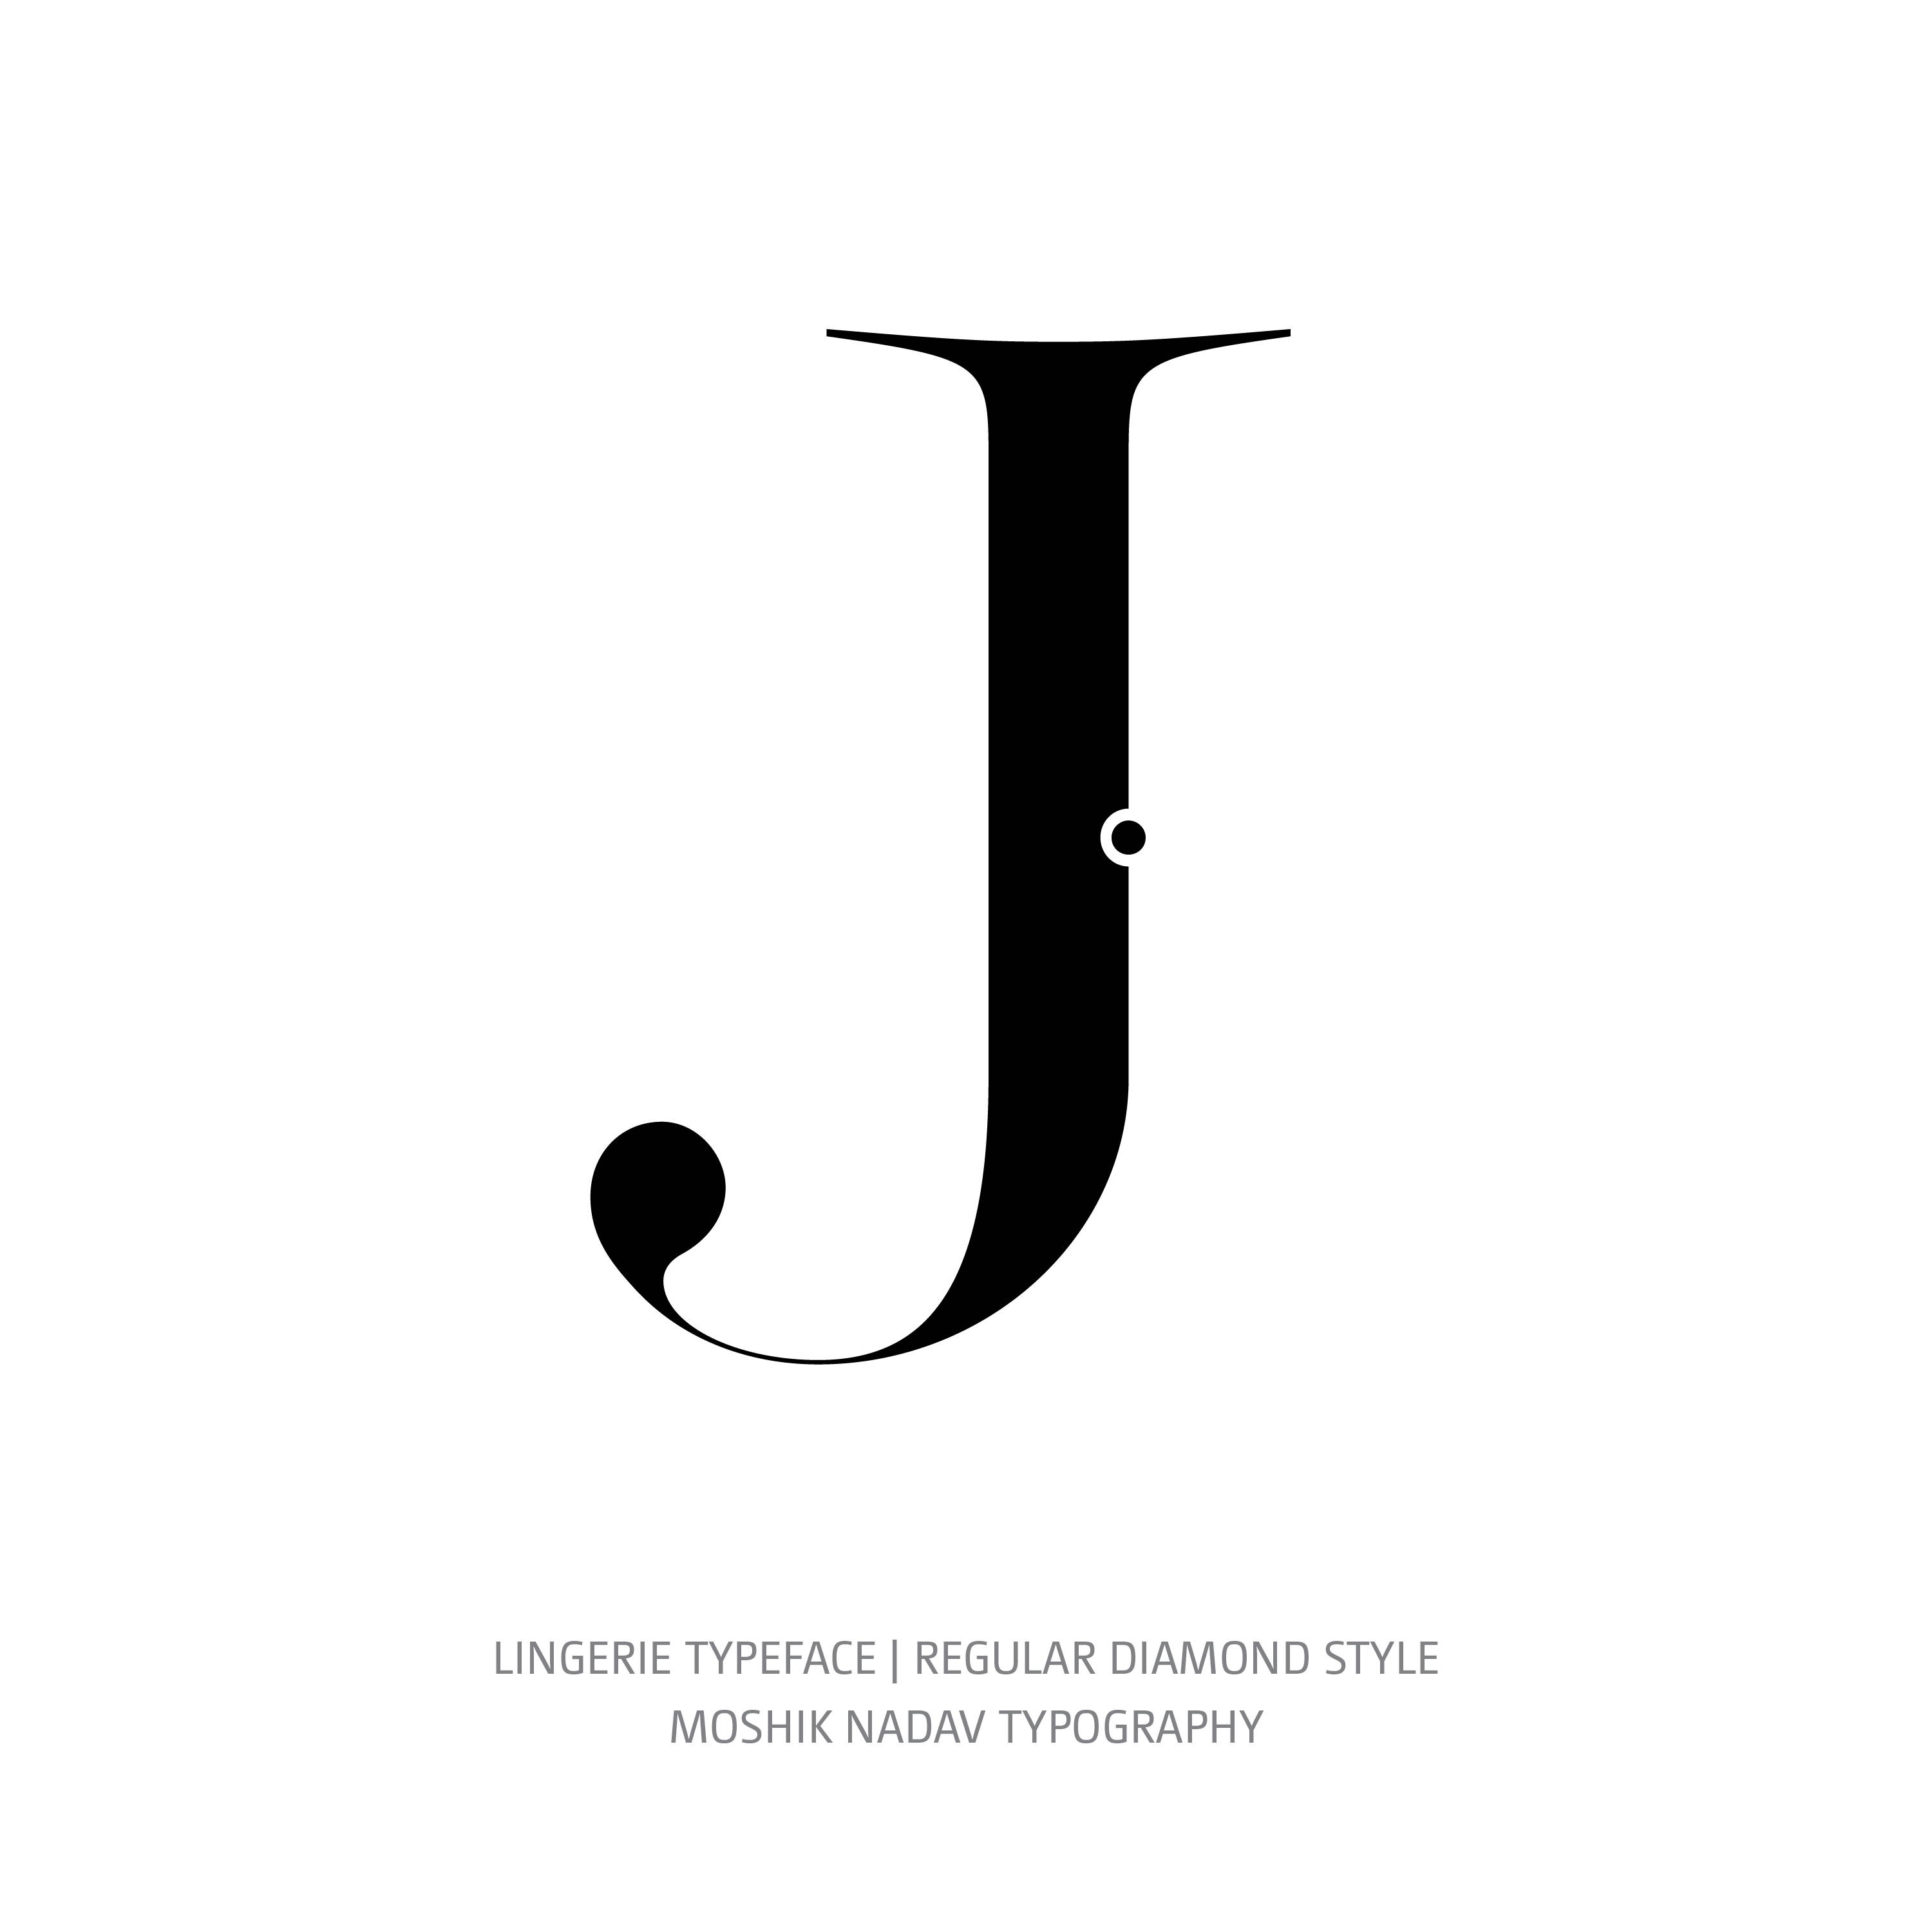 Lingerie Typeface Regular Diamond J